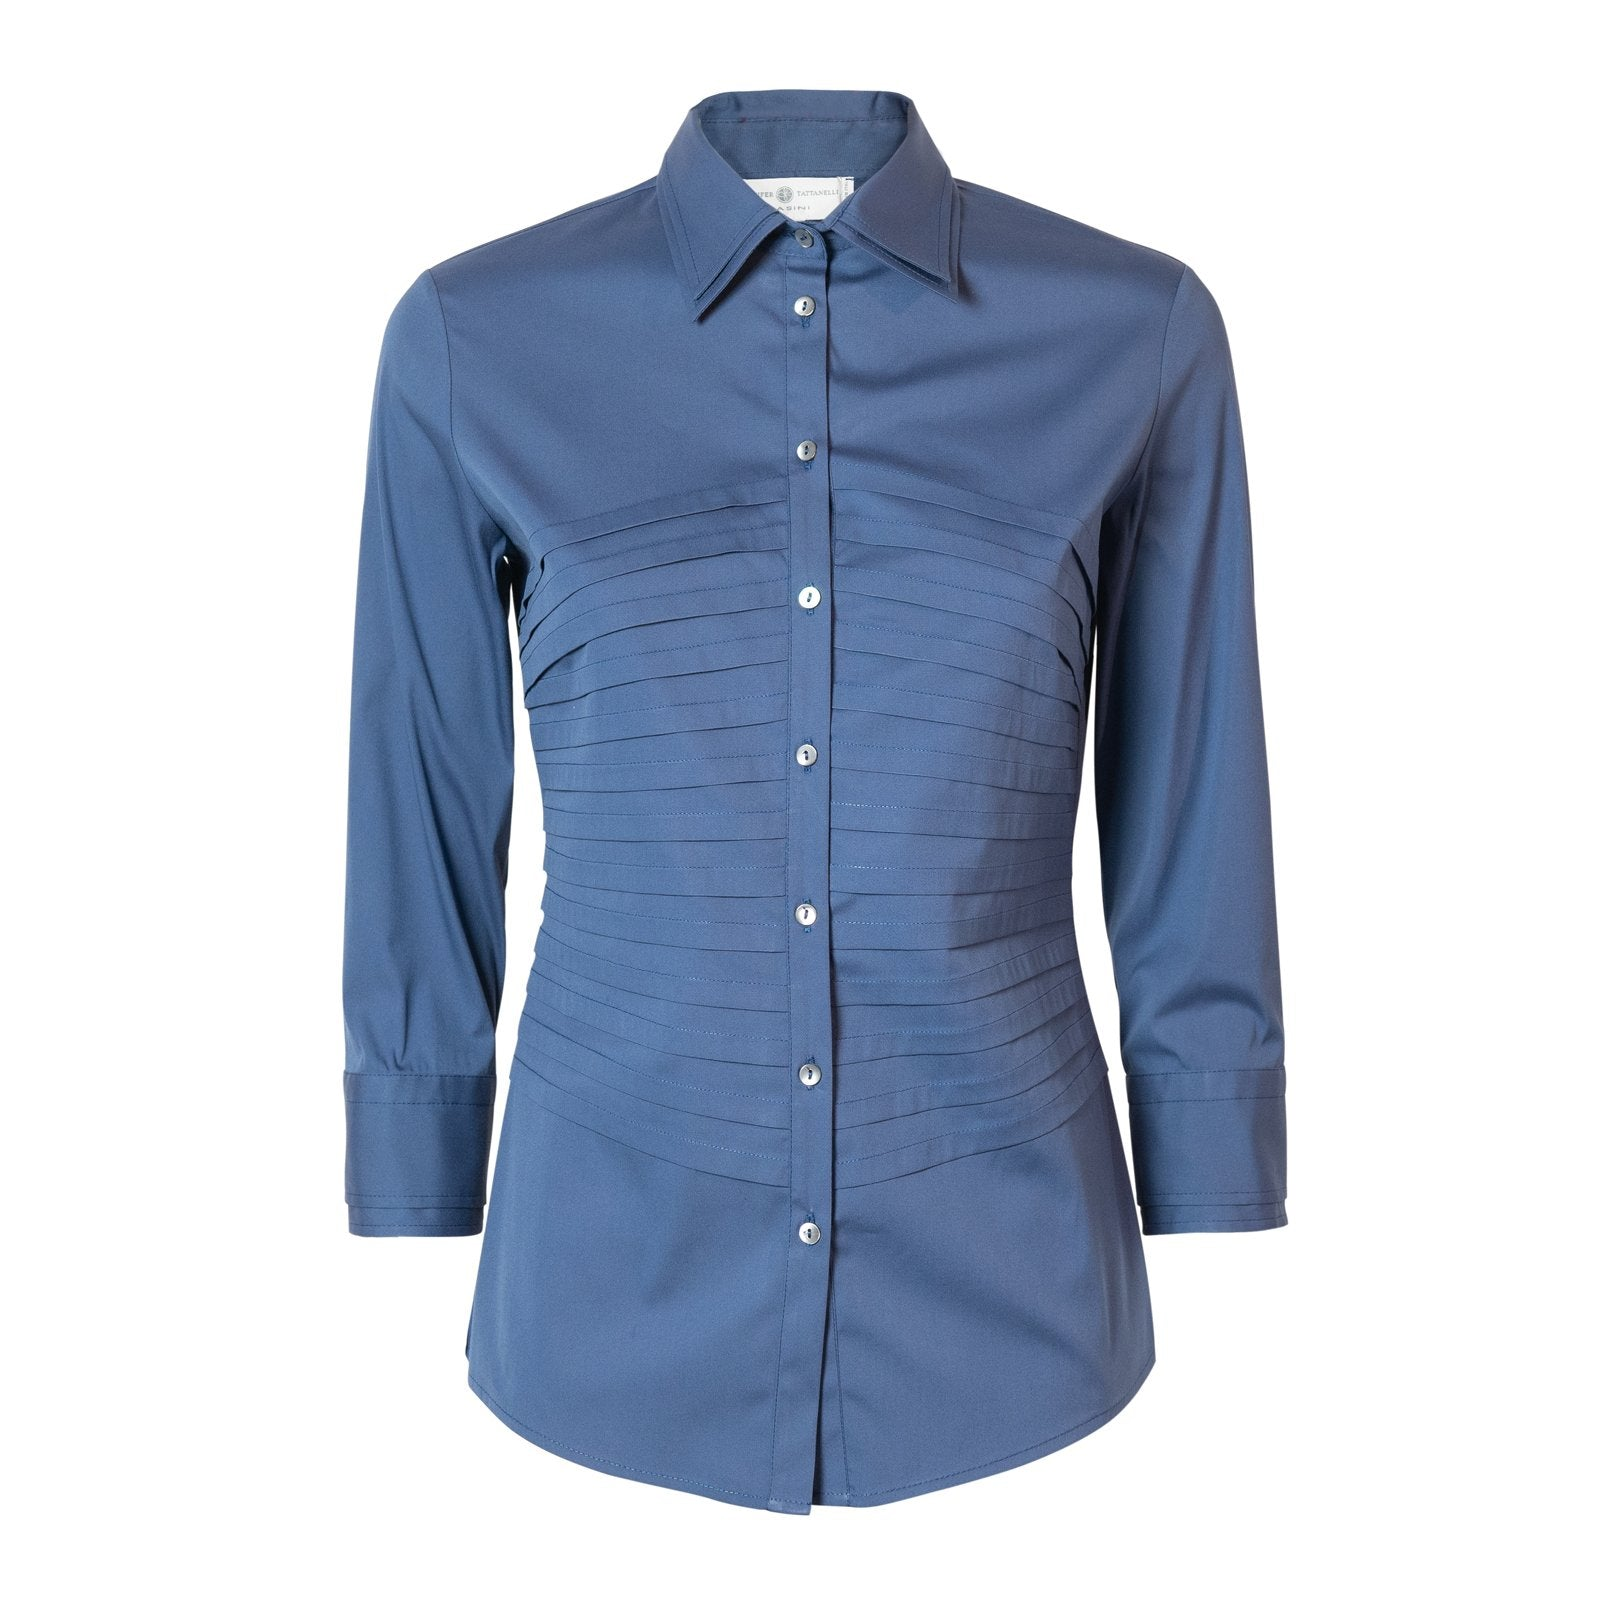 Virgilio women cotton shirt GOSM2574 - Jennifer Tattanelli